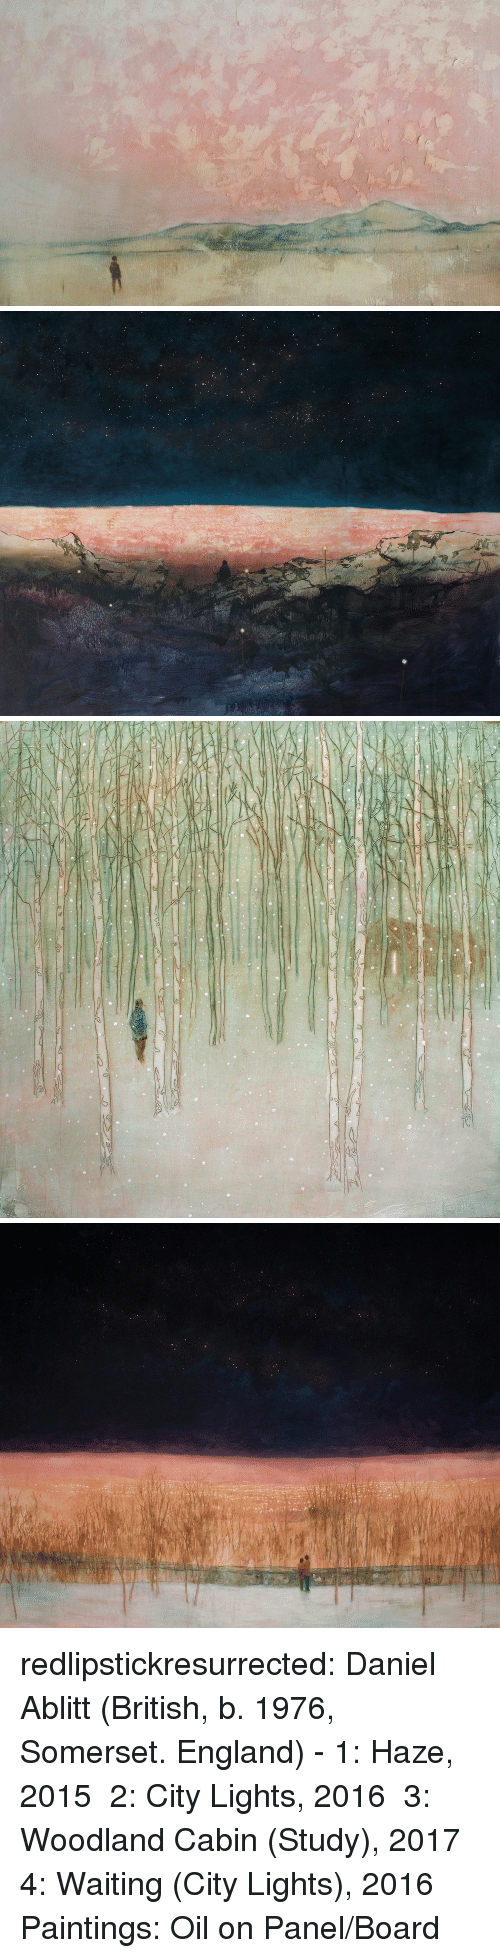 woodland: redlipstickresurrected:  Daniel Ablitt (British, b. 1976, Somerset. England) - 1: Haze, 2015  2:  City Lights, 2016  3:  Woodland Cabin (Study), 2017  4:  Waiting (City Lights), 2016  Paintings: Oil on Panel/Board